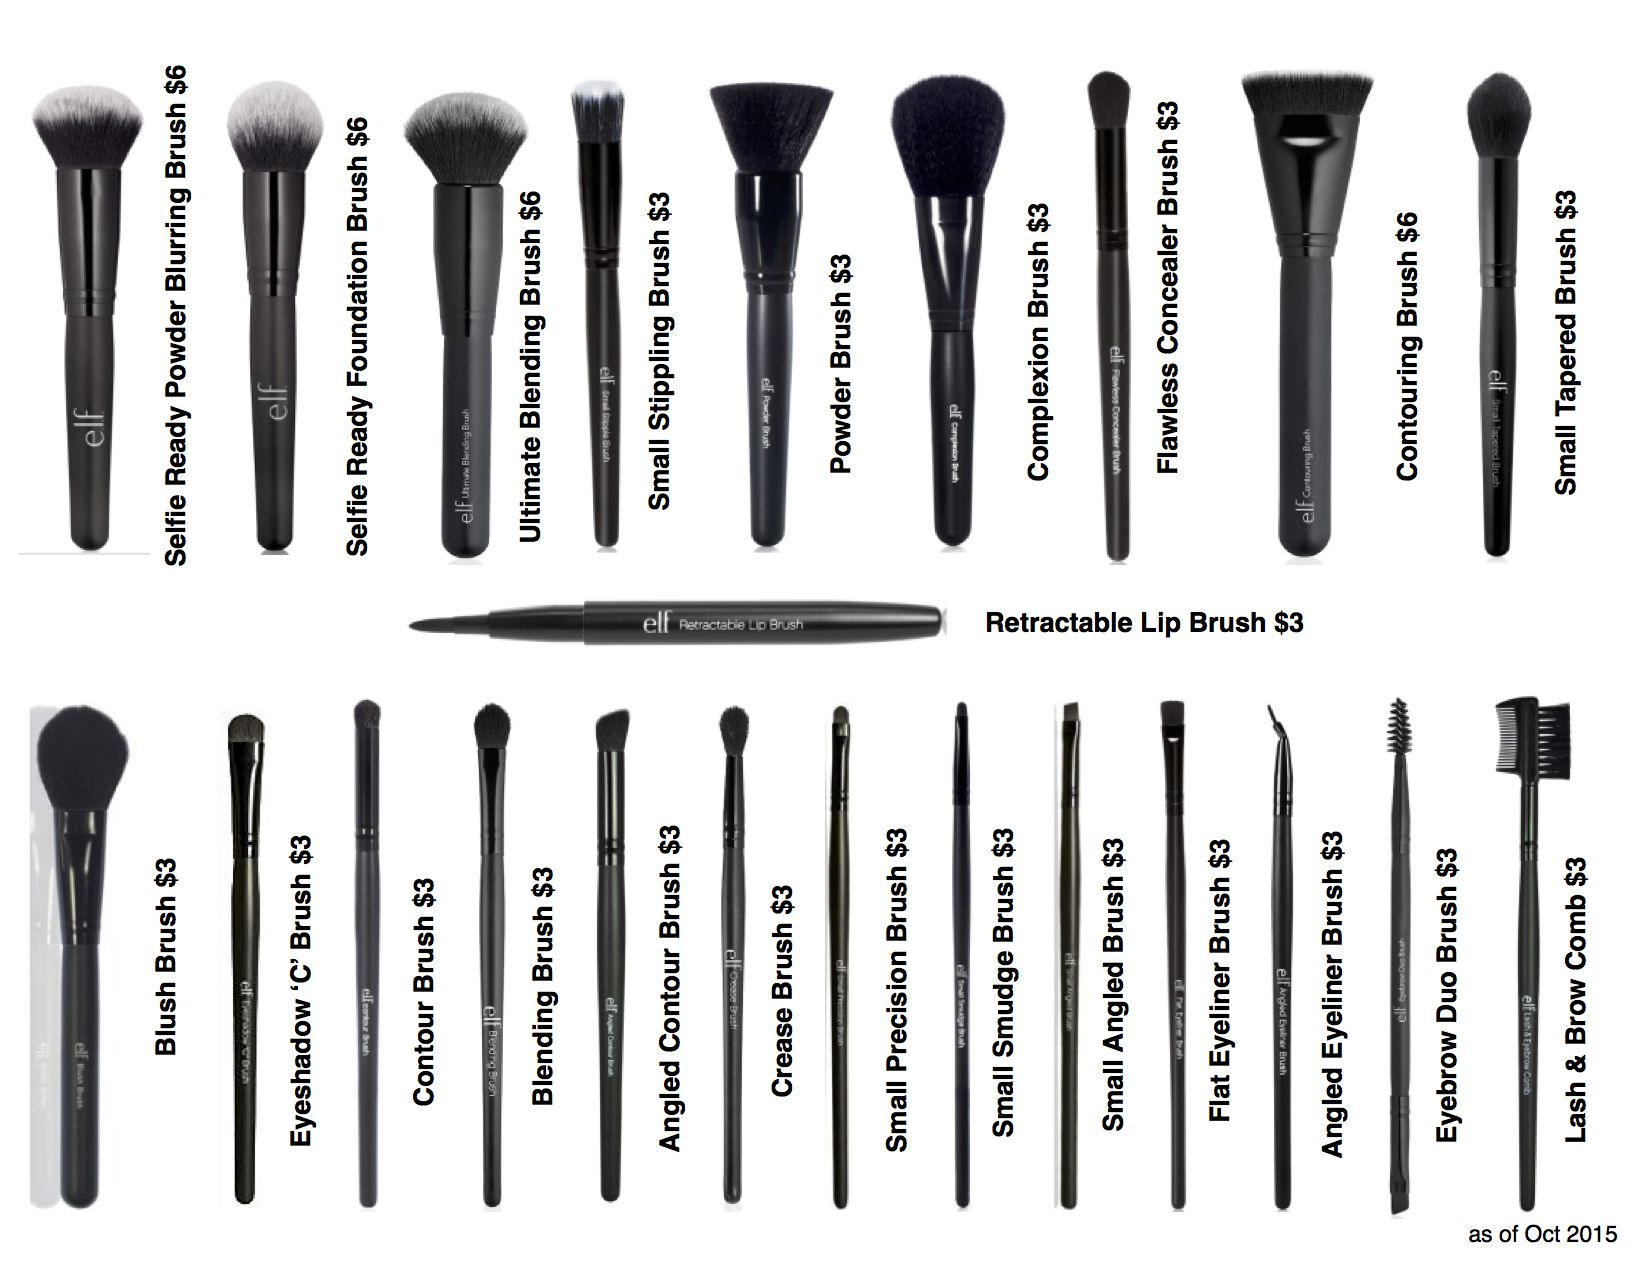 Elf Brushes I Just Bought The Ultimate Blending Brush Yesterday At